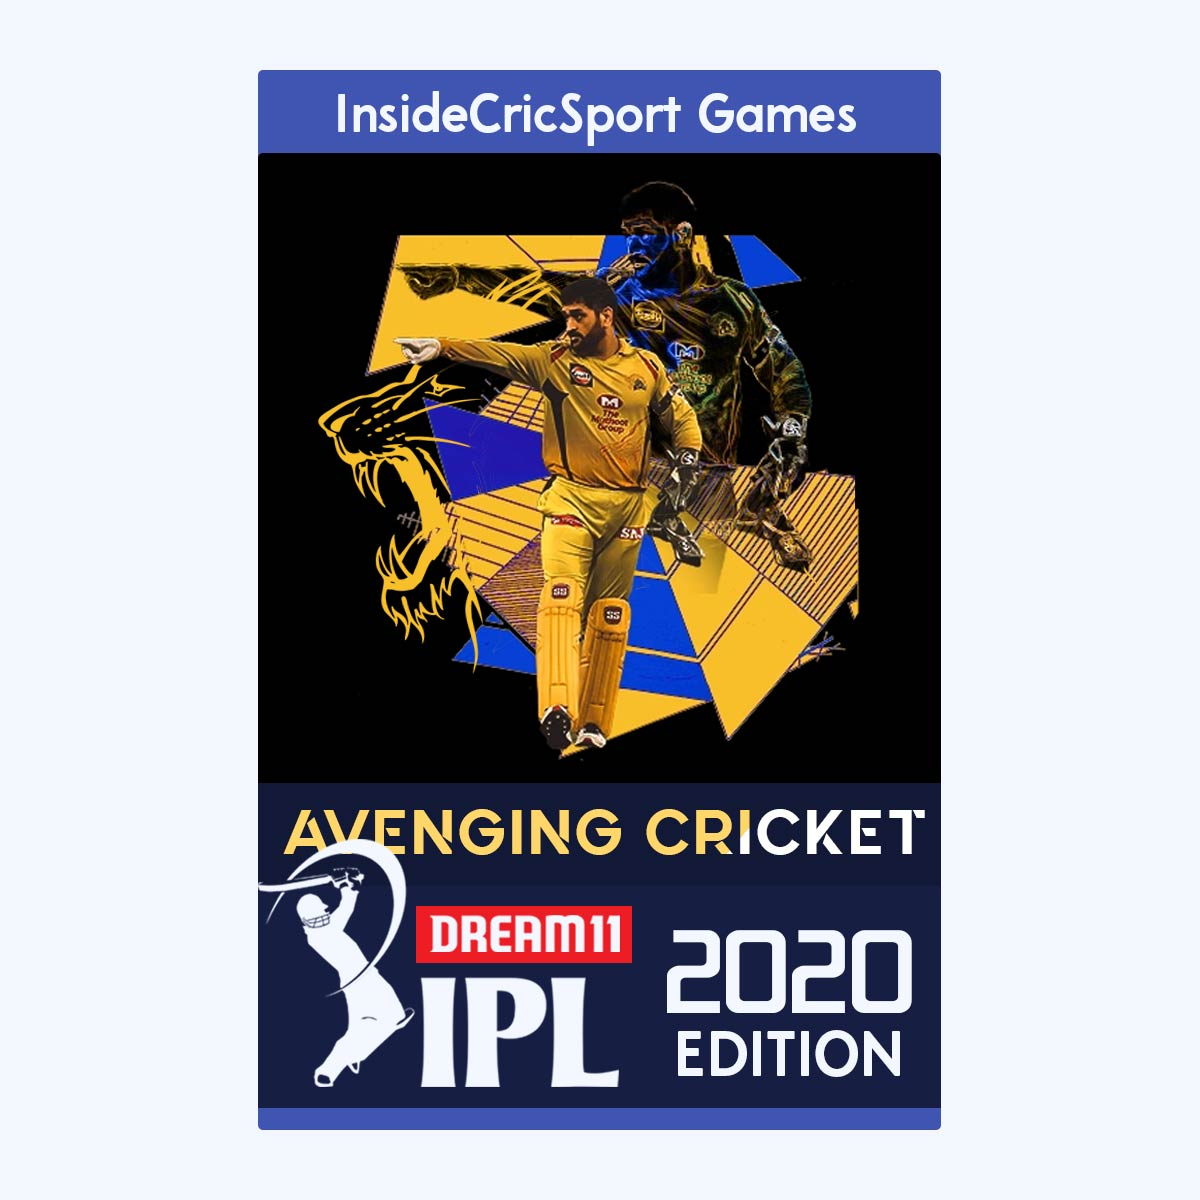 Dream11-IPL-2020-Product-Image